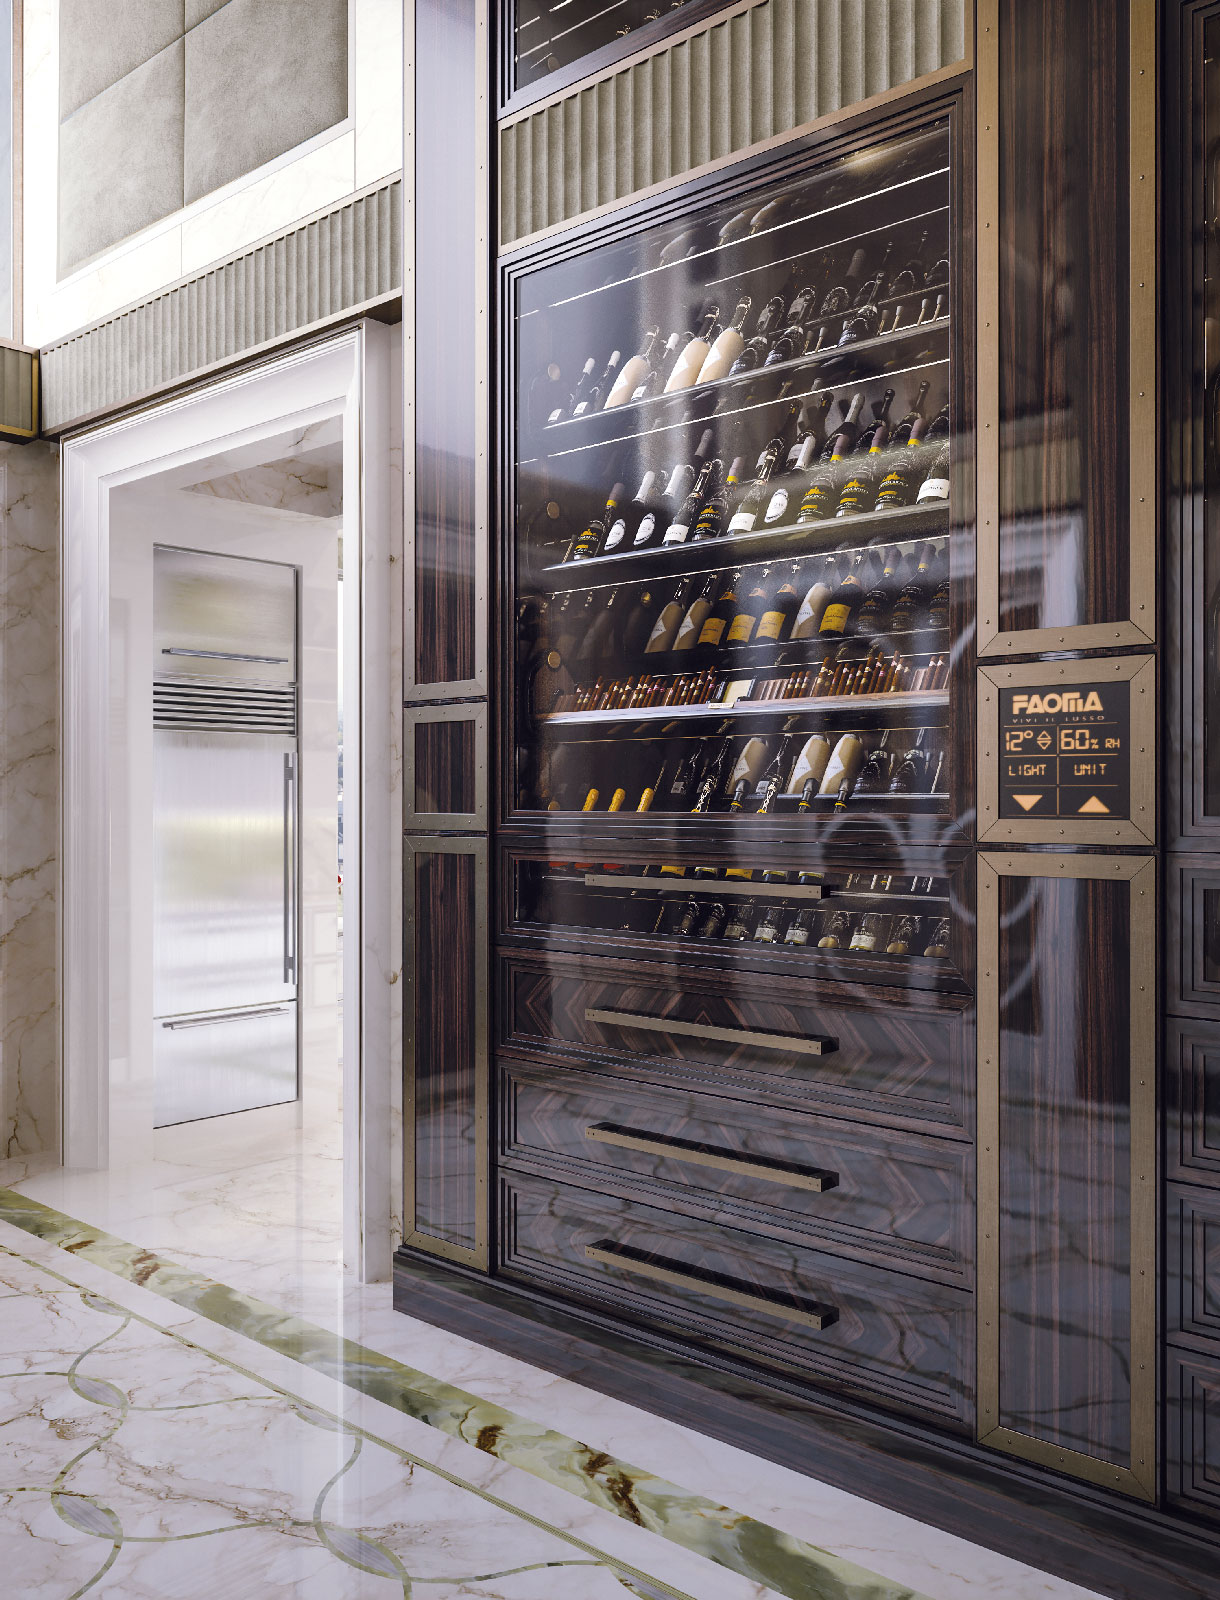 Faoma Metropolitan Wine Fridge